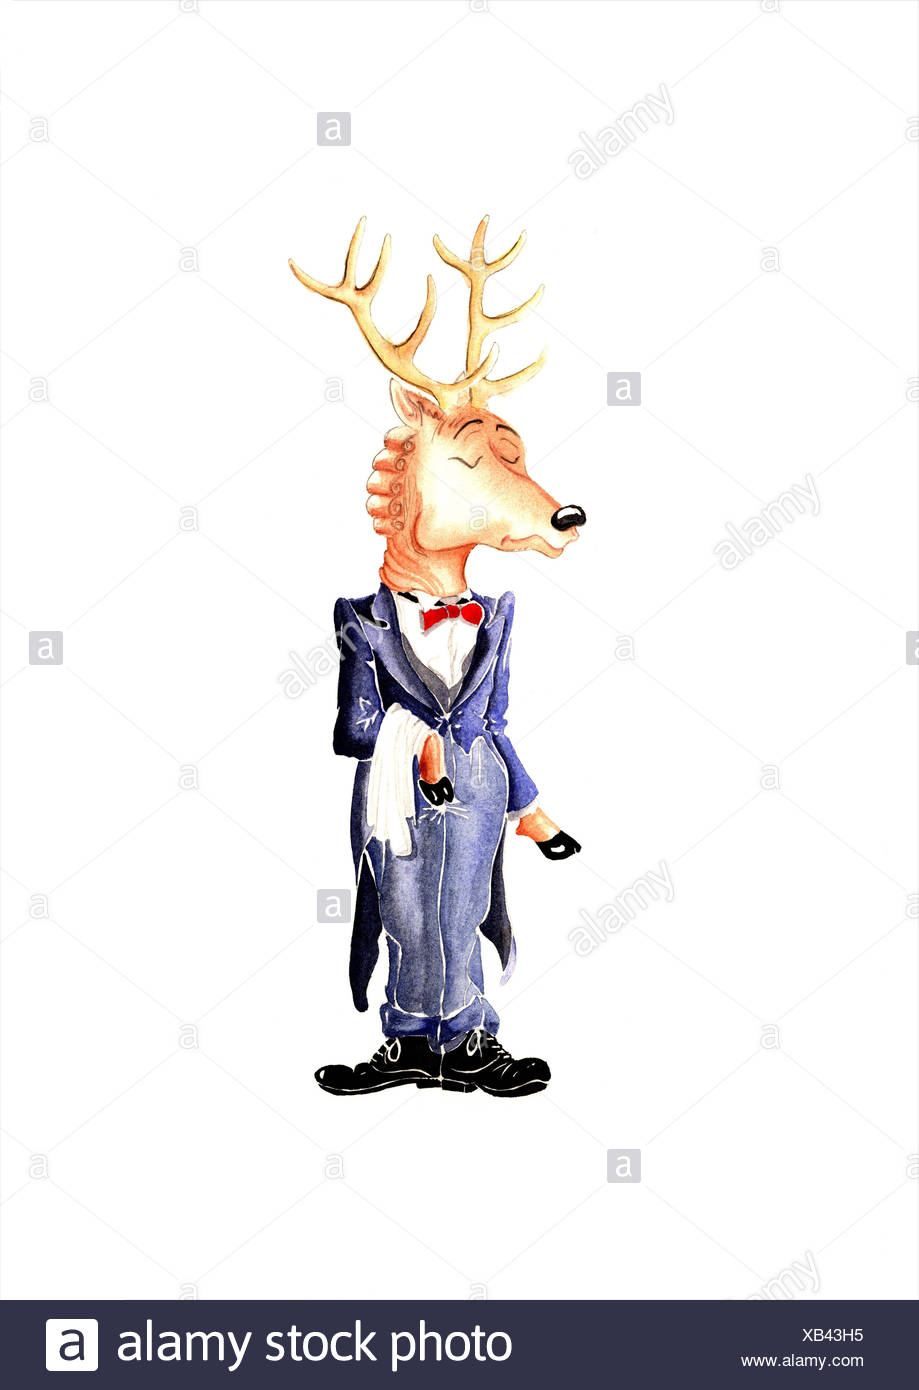 Deer with antlers in tailcoat with red bow-tie - Stock Image